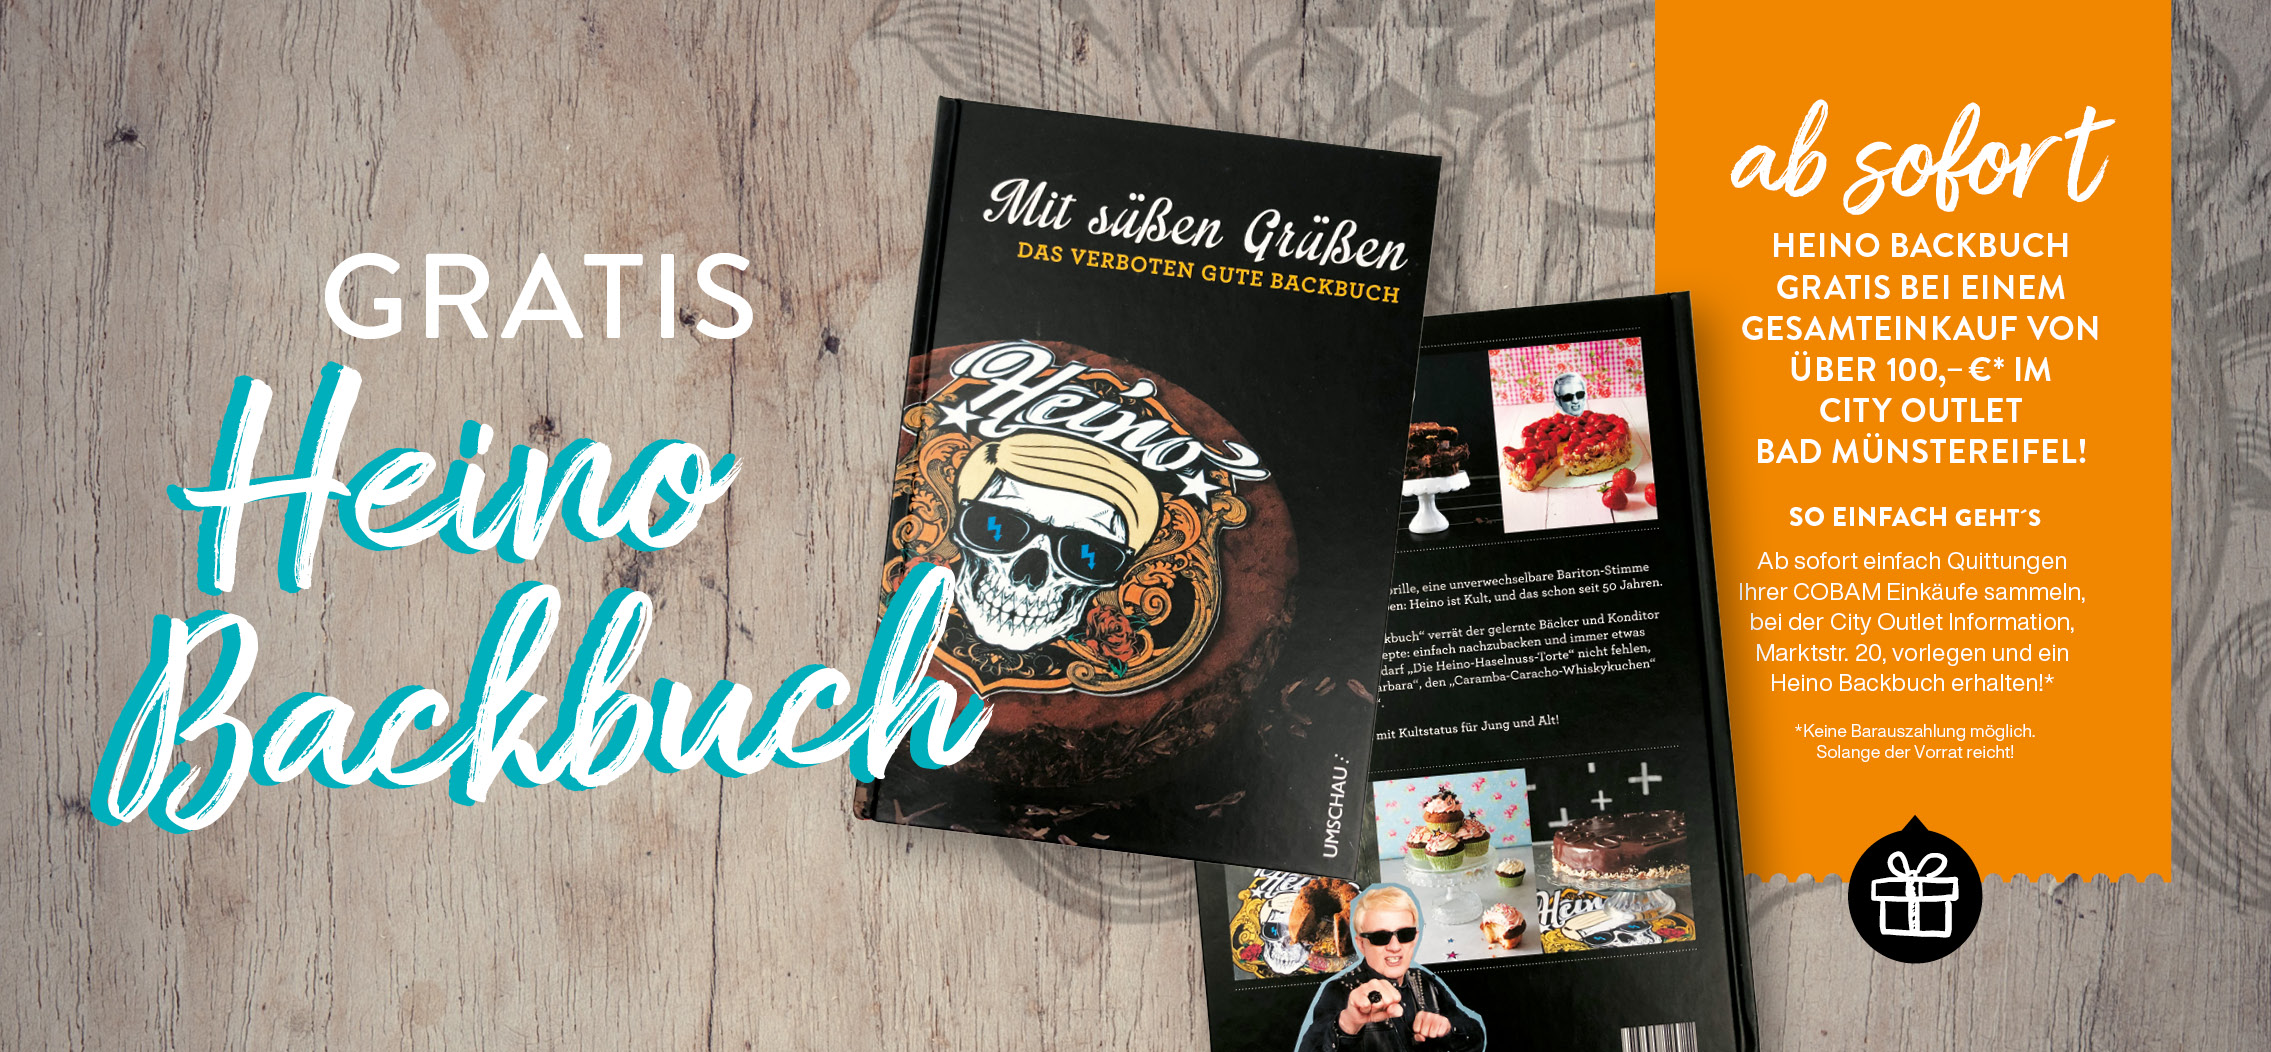 Backbuch Heino City Outlet